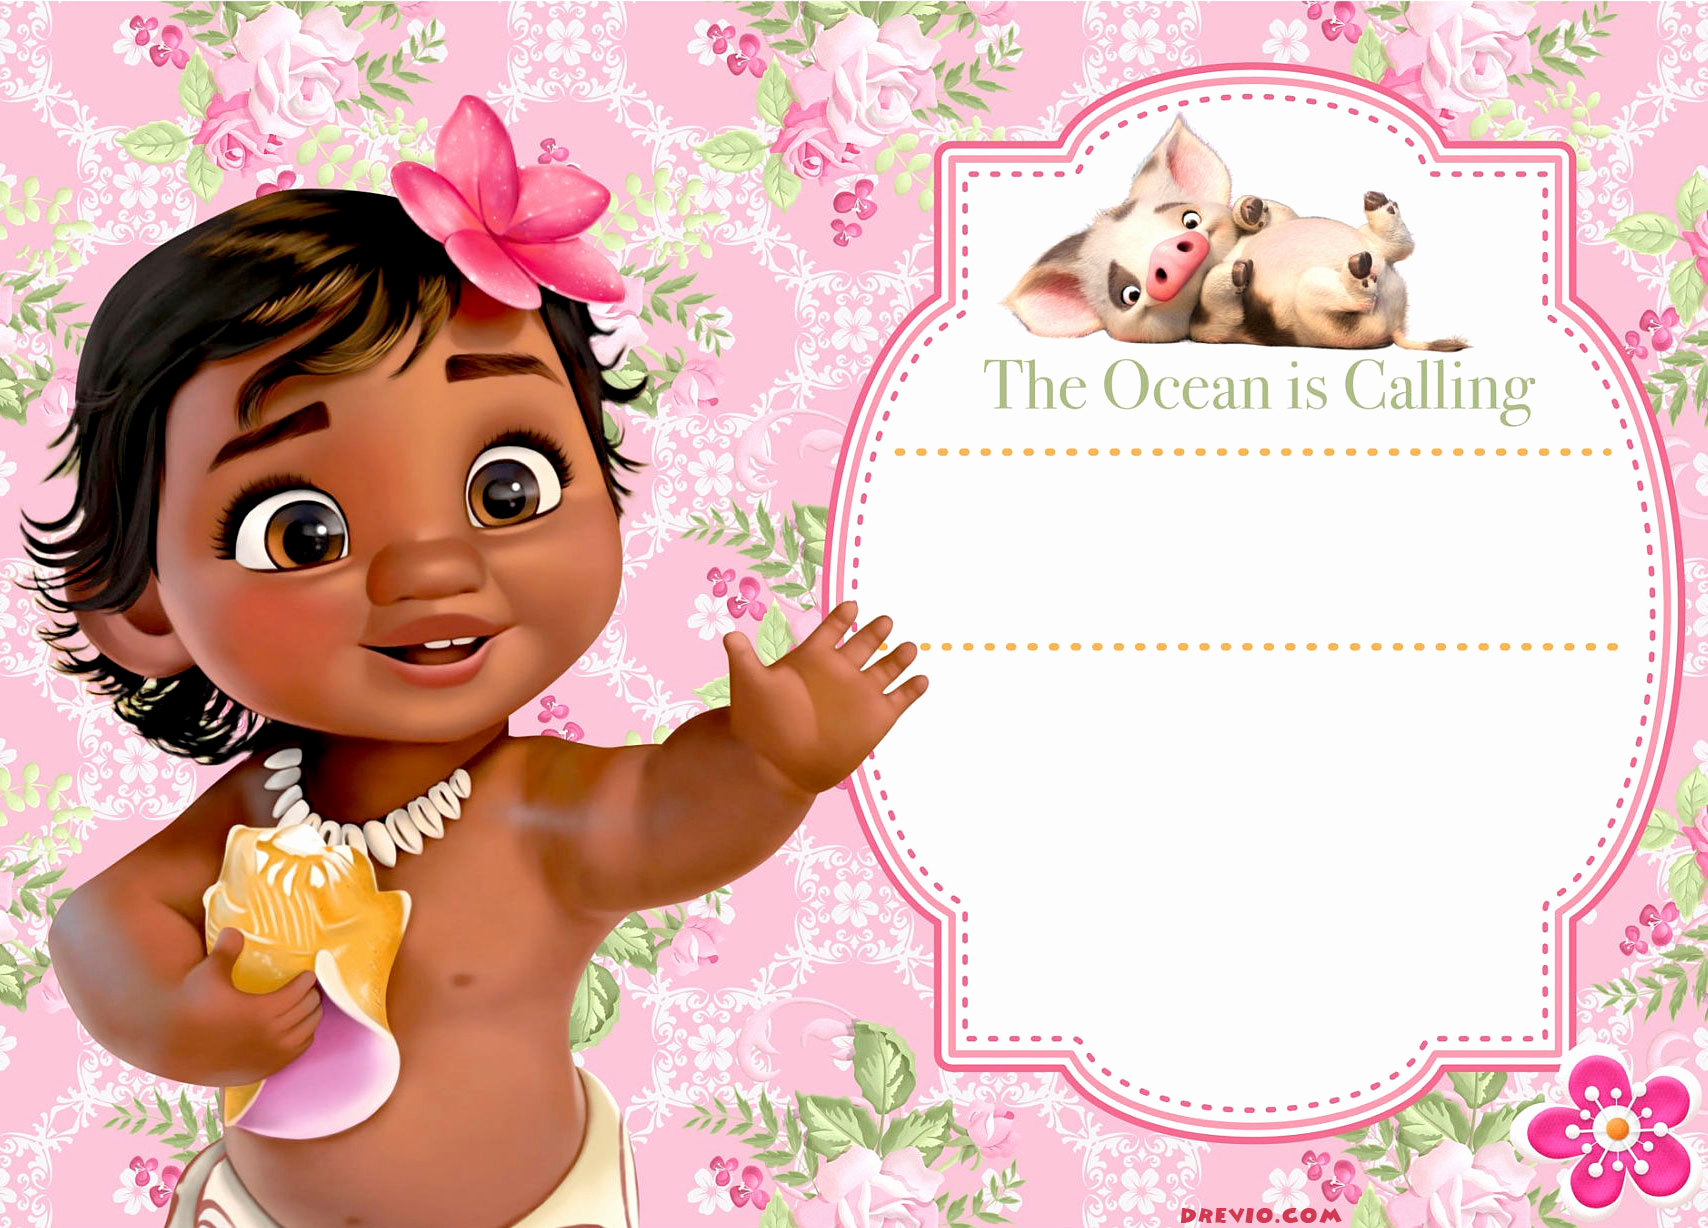 Free Moana Invitation Template Lovely Free Moana Birthday Invitation Template Free Invitation